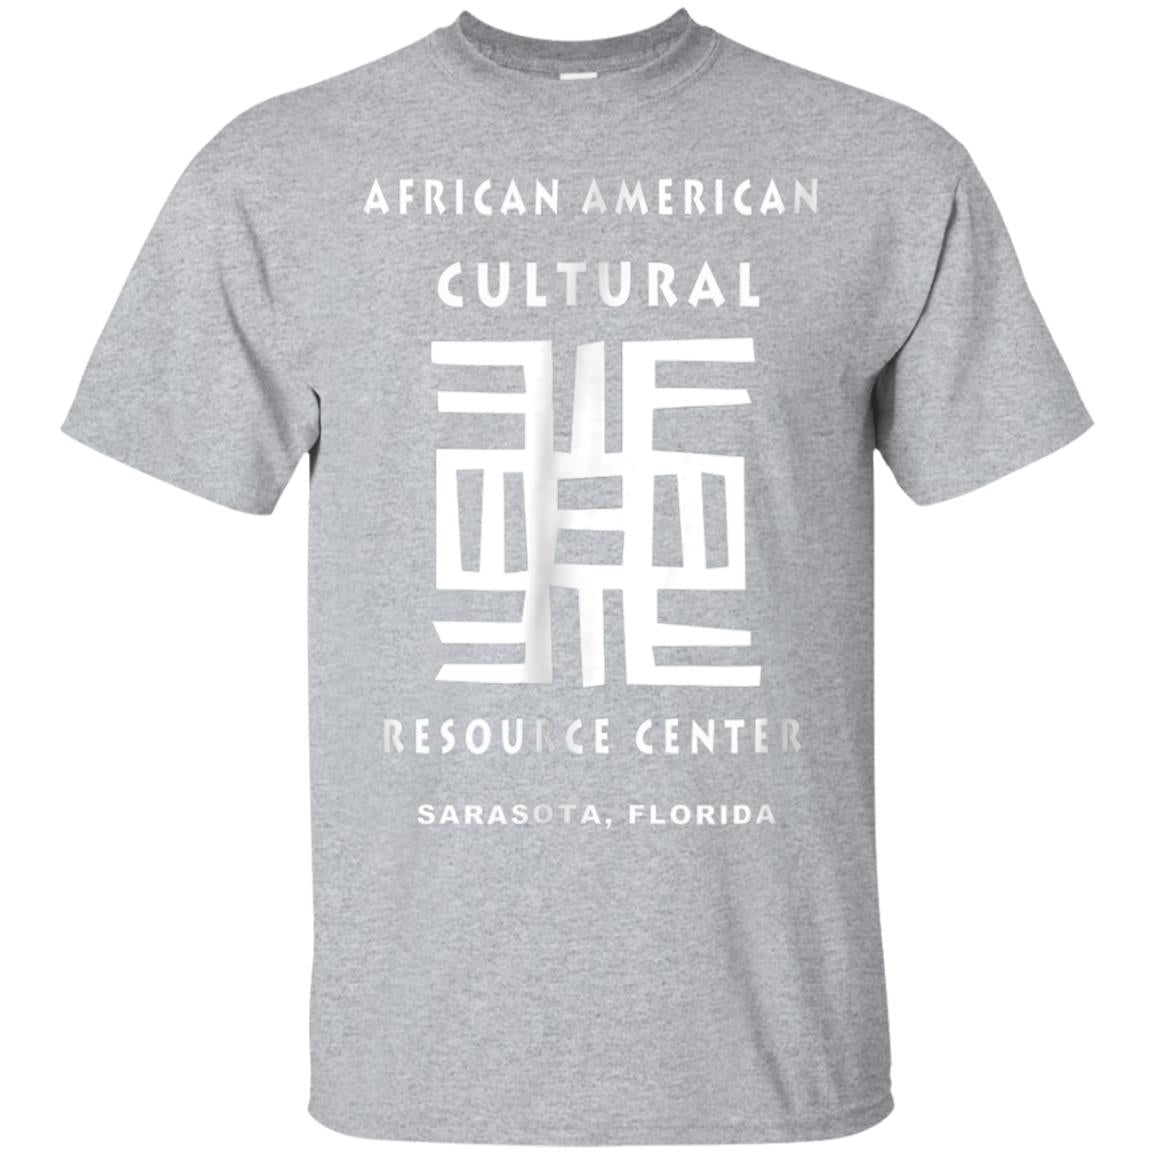 African American Cultural Resource Center T Shirt 99promocode